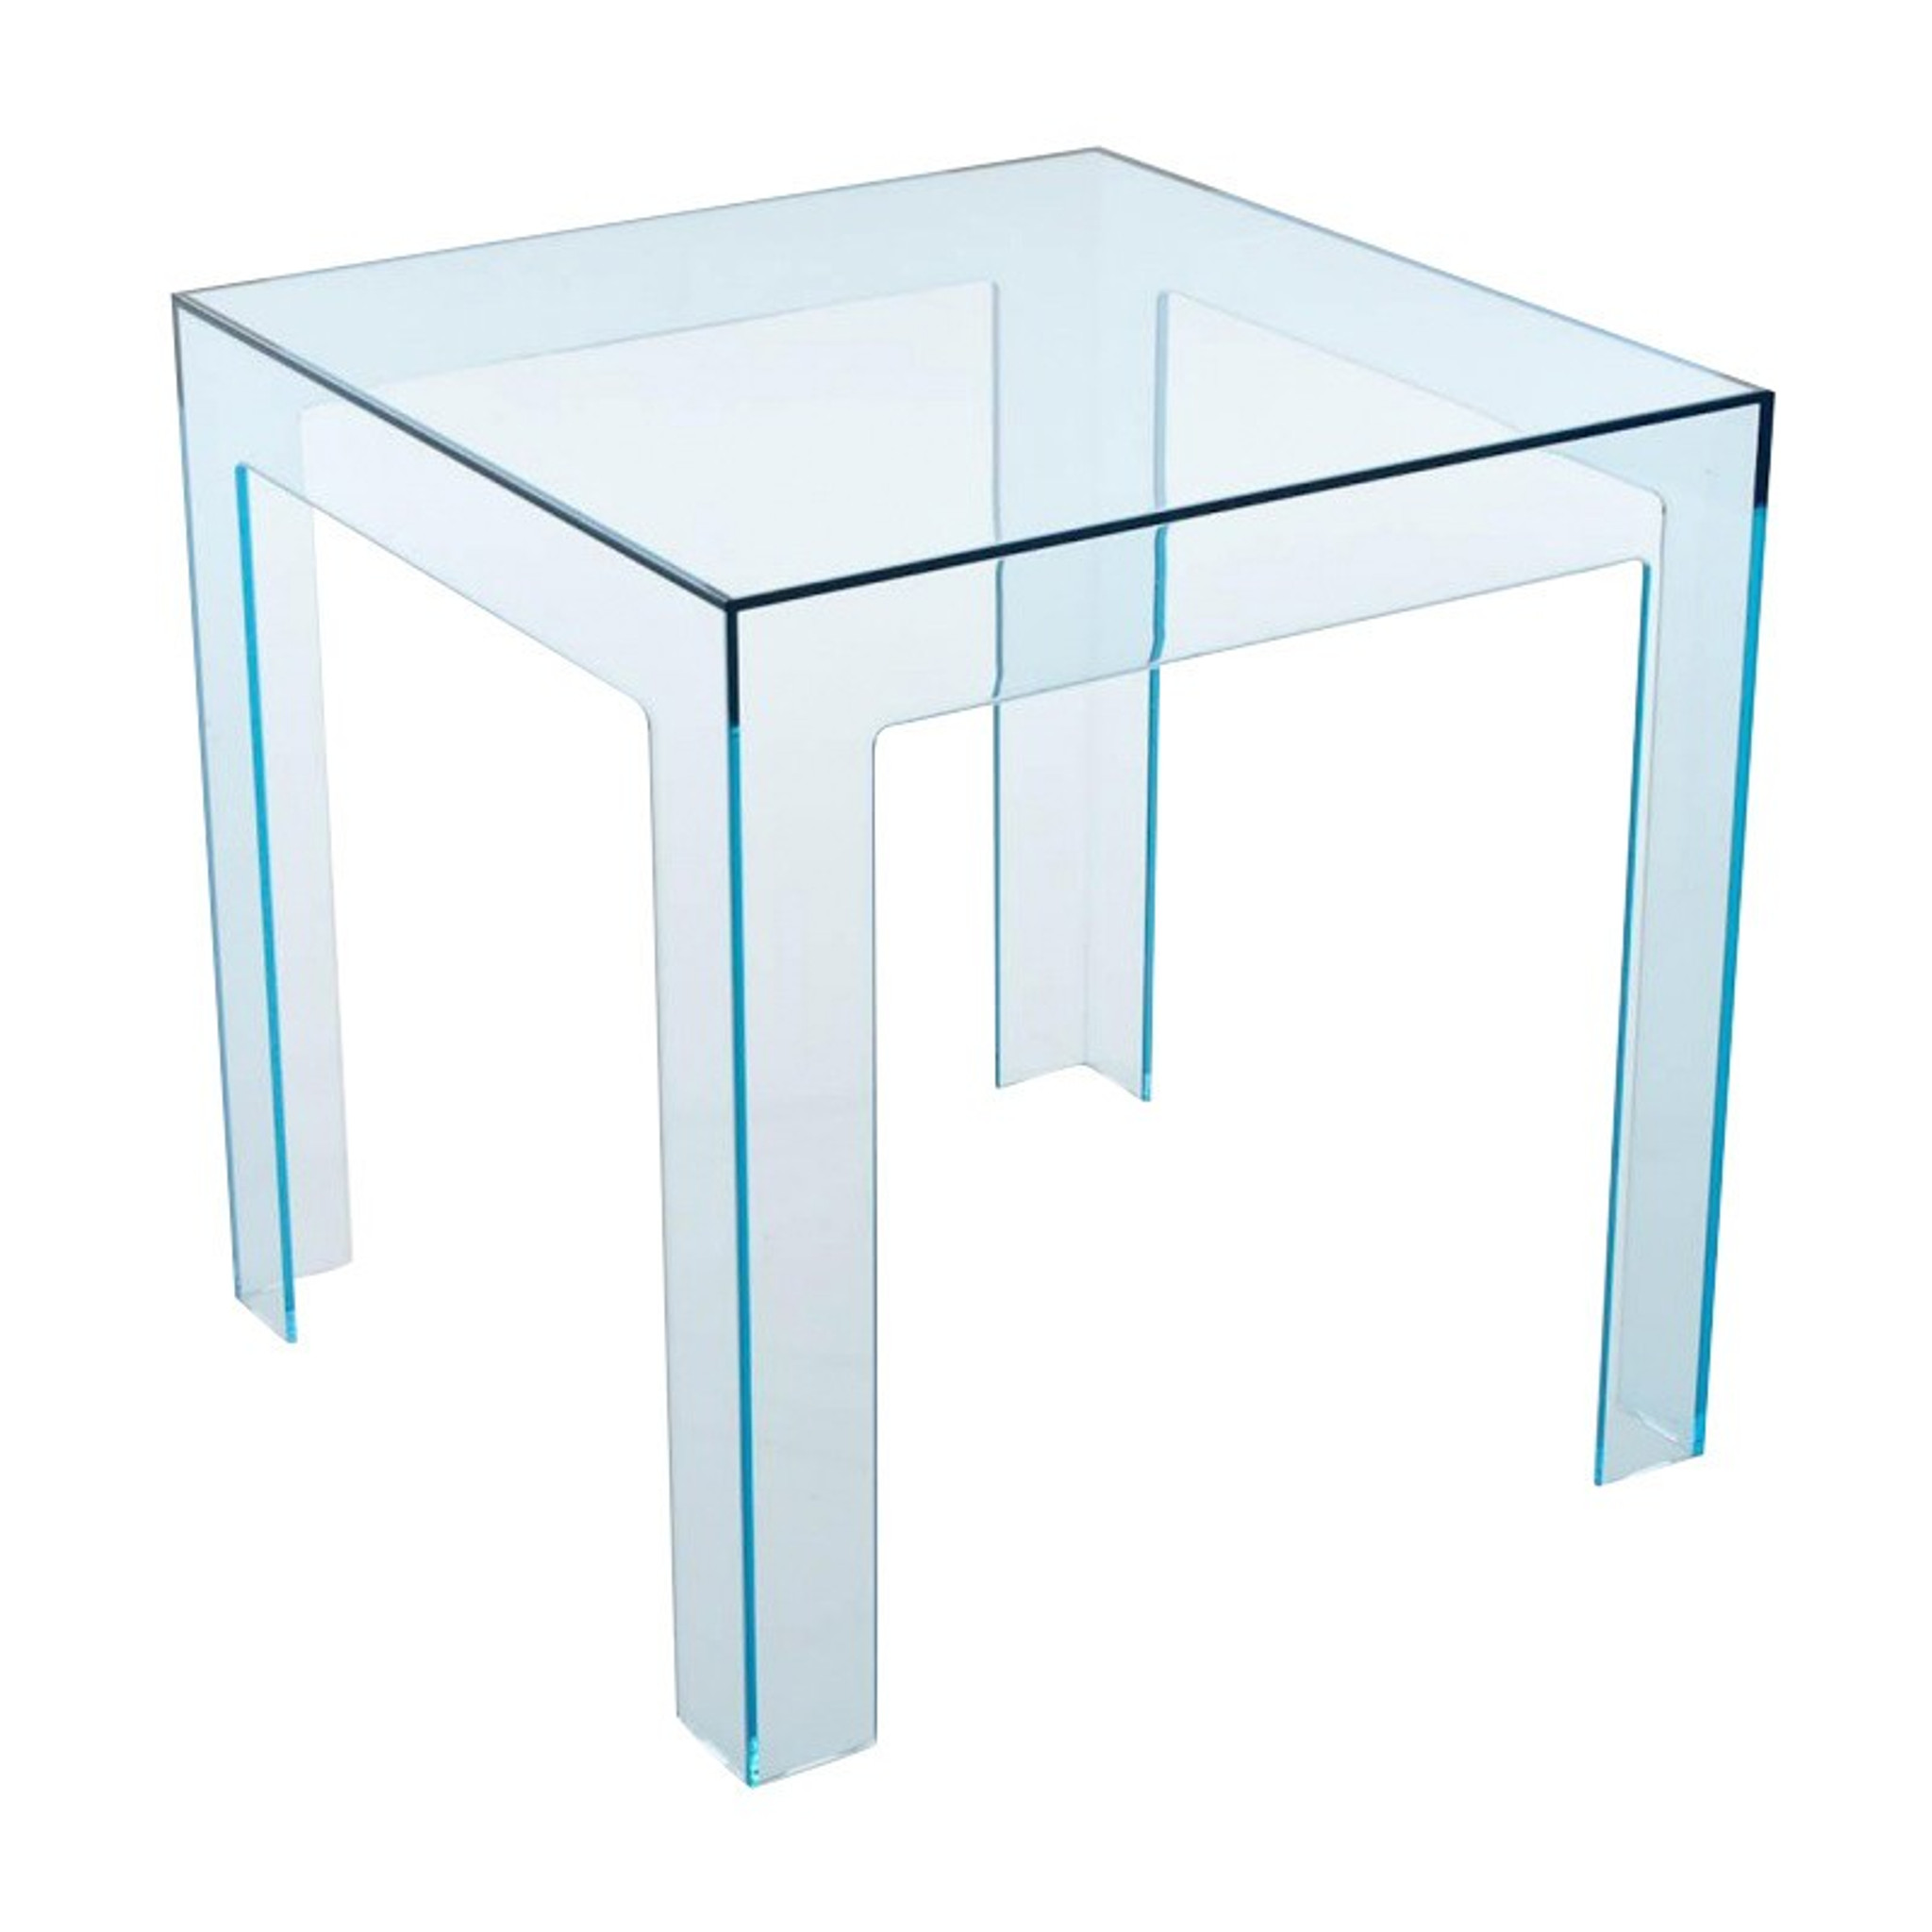 kartell-jolly-table-light-blue-kids end side lucite acrylic play